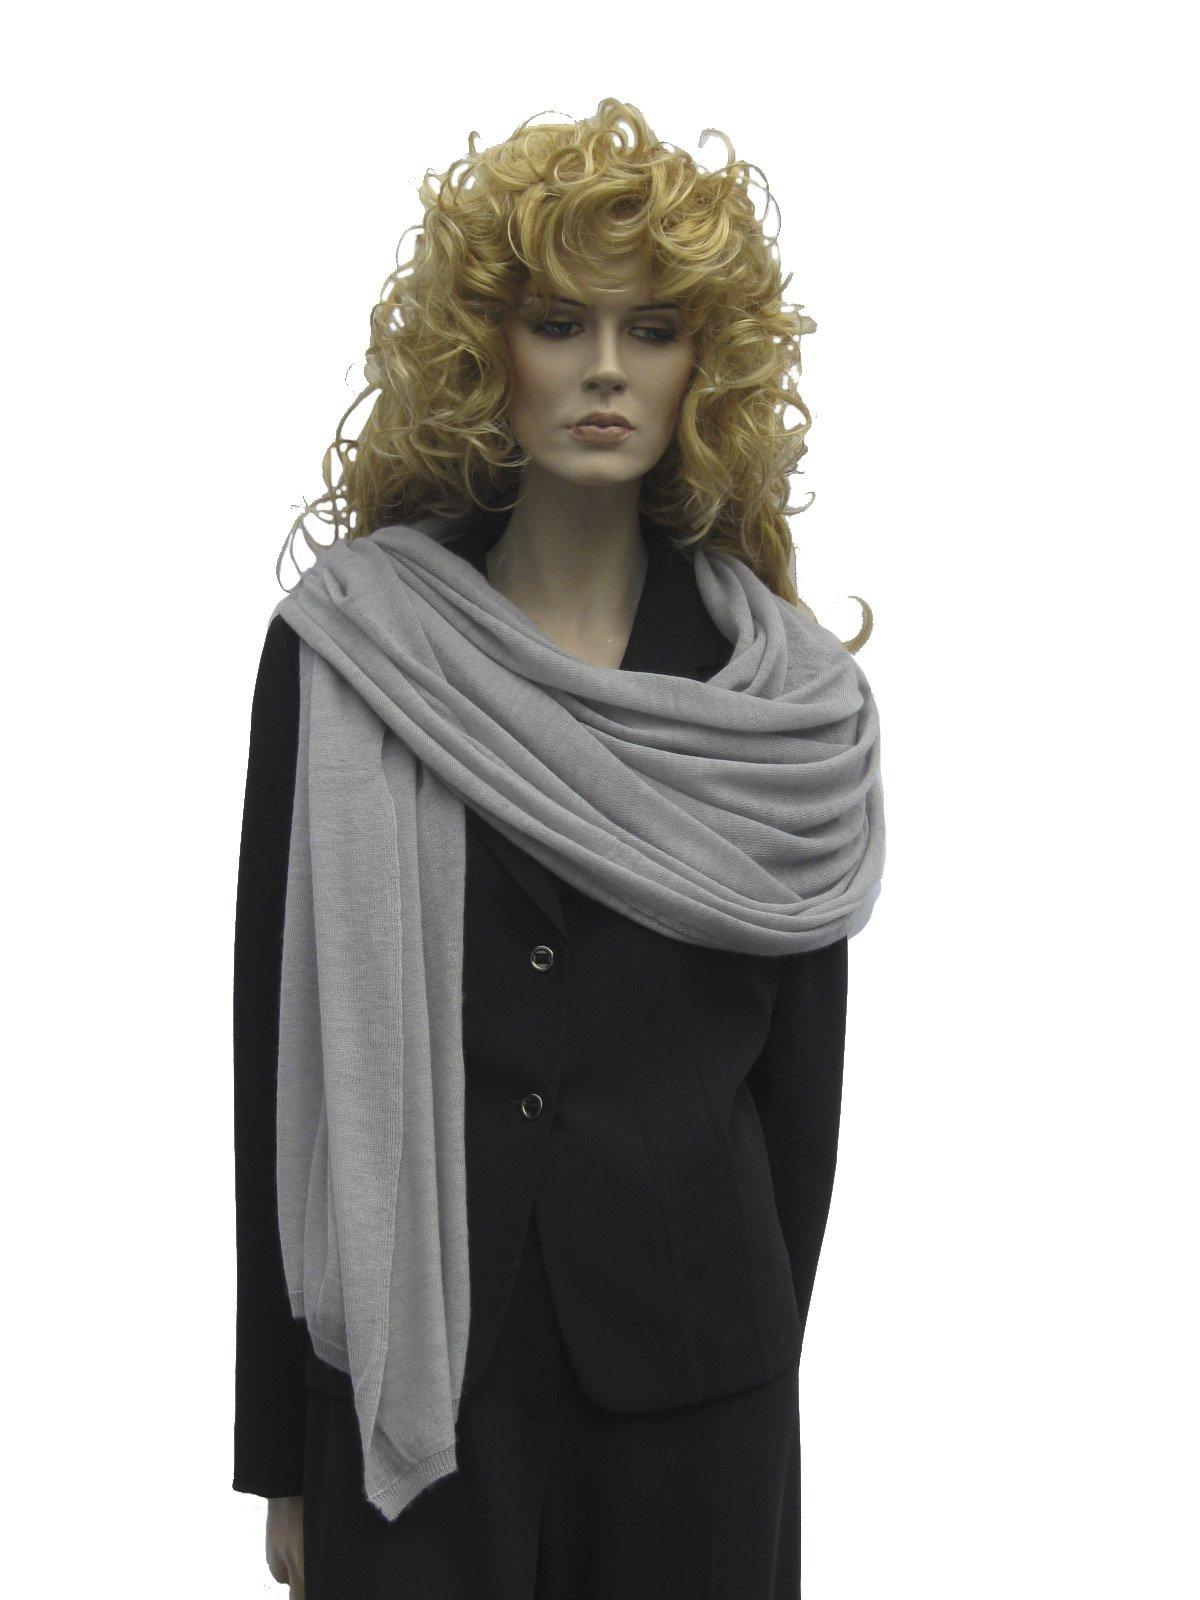 Cashmere Pashmina Group: Cashmere Scarf Shawl Stole Wrap (Sweater Knit Cashmere Shawl) Silver Grey